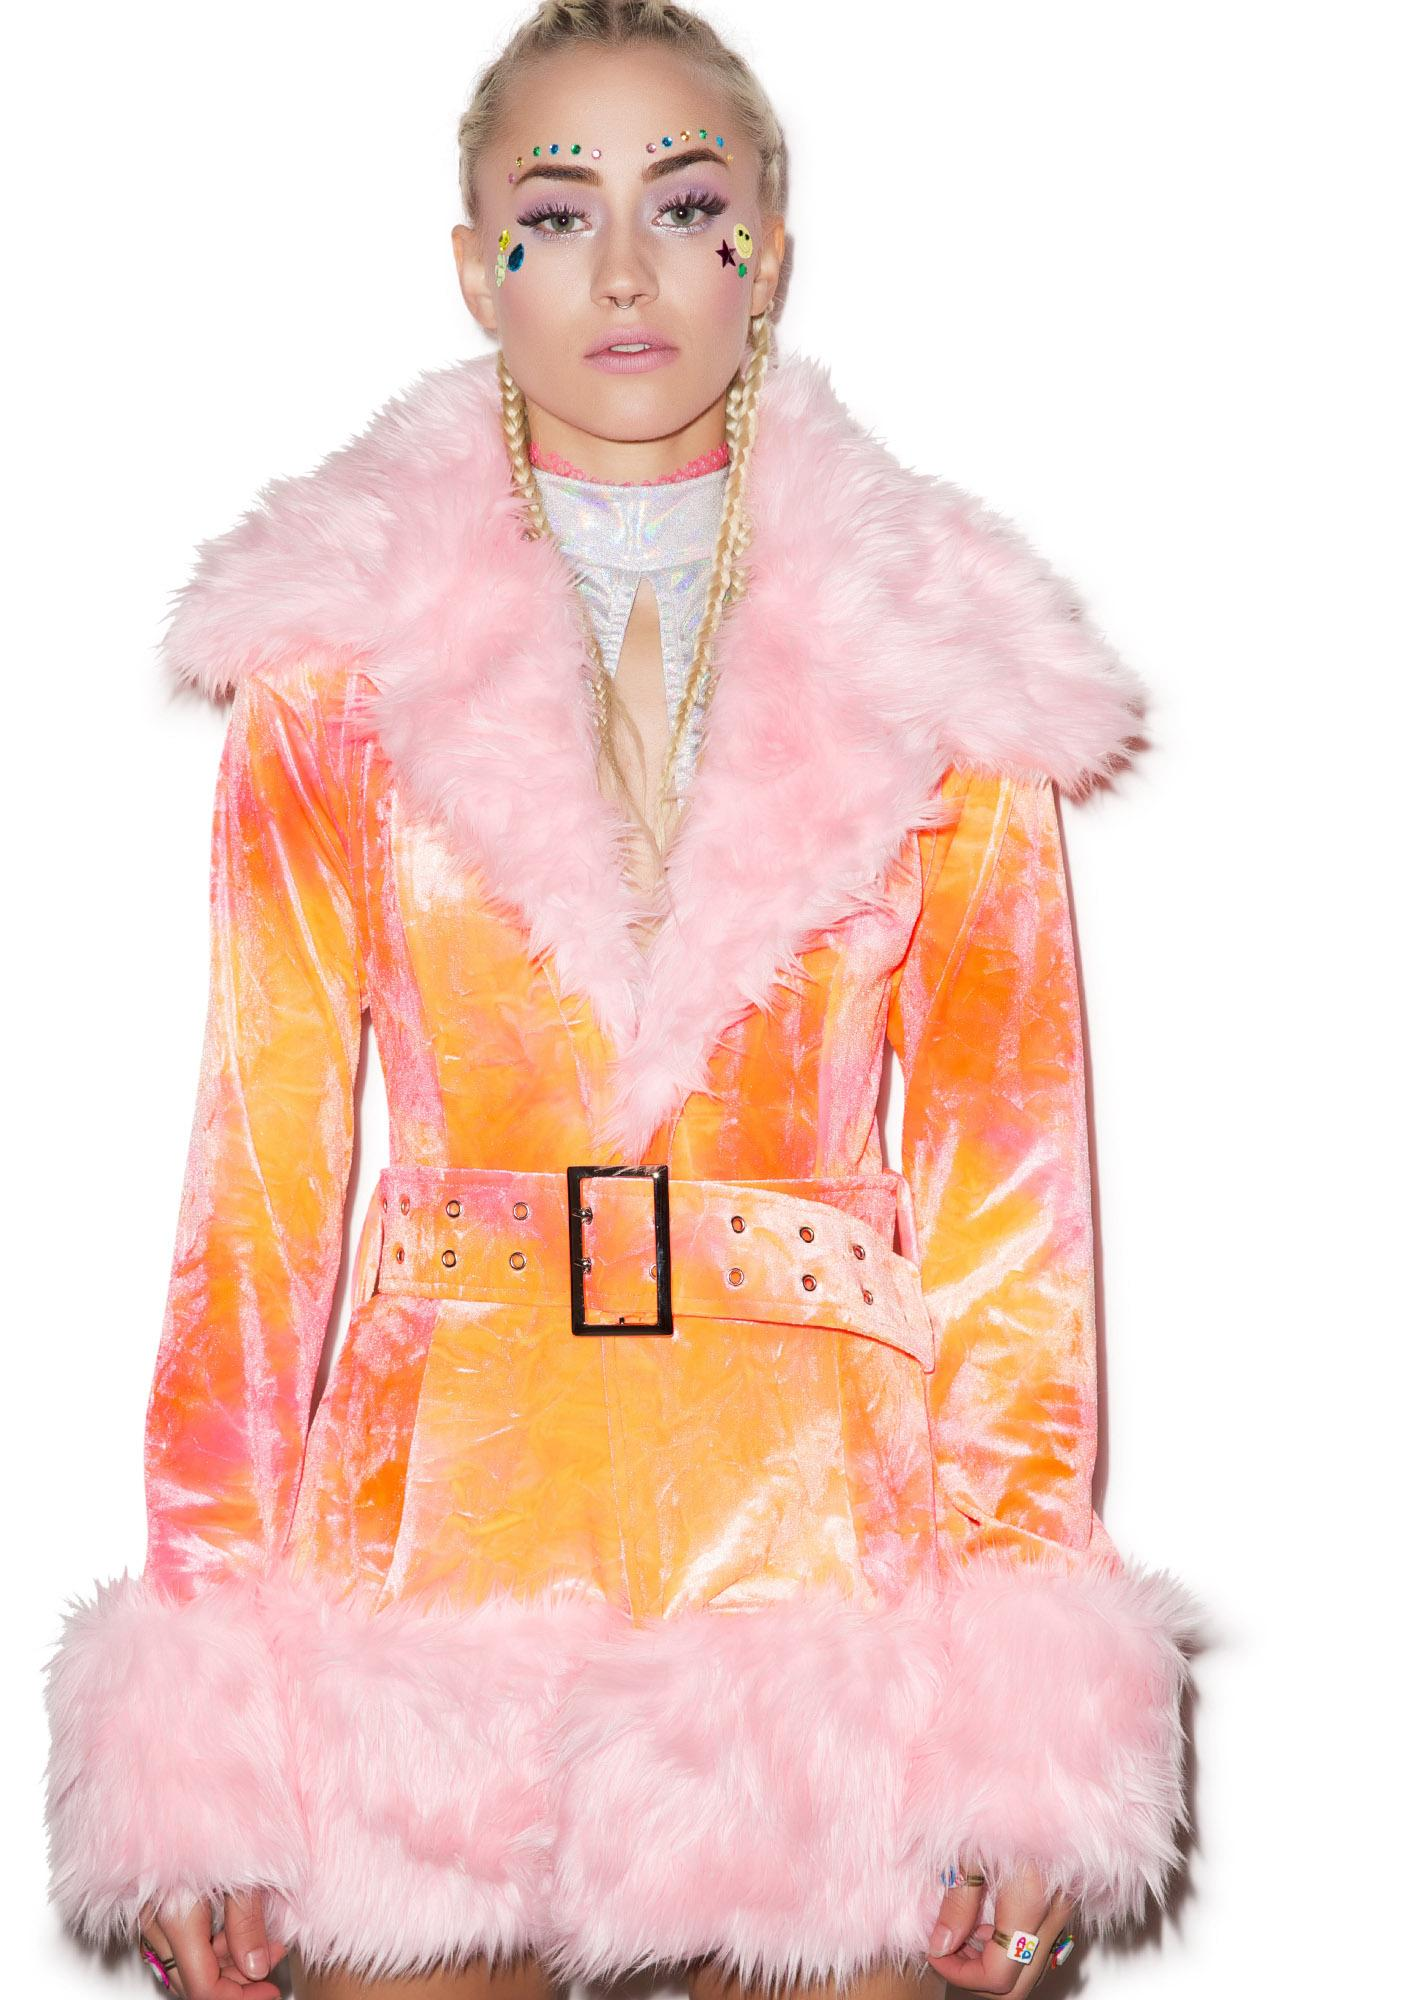 J Valentine Cotton Candy Coat